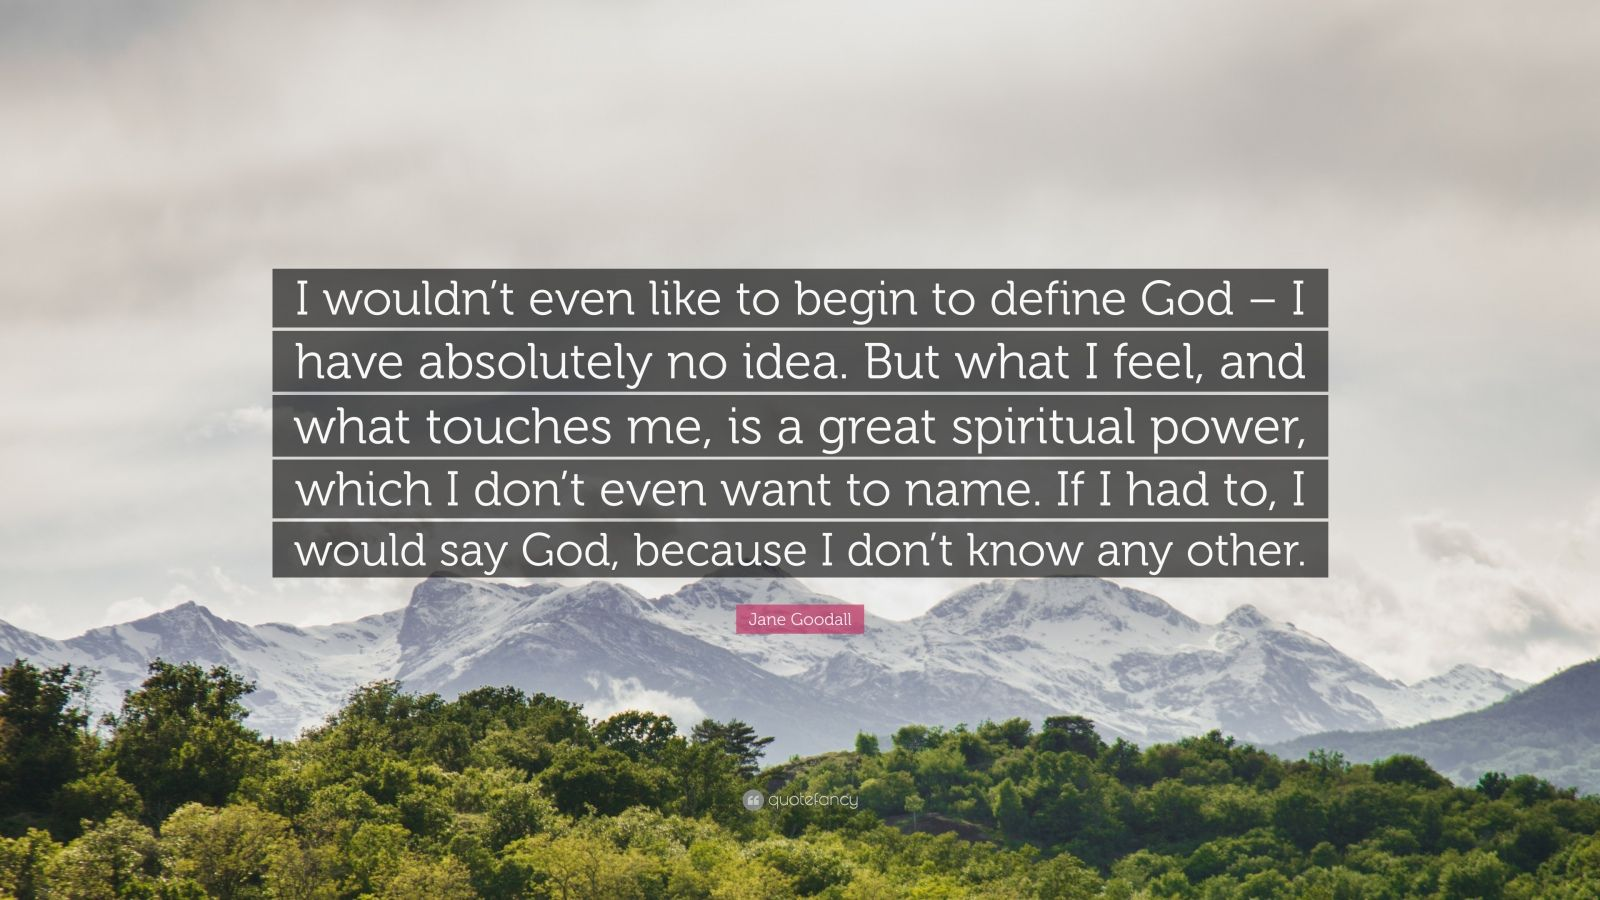 """Jane Goodall Quote: """"I wouldn't even like to begin to define God – I have absolutely no idea. But what I feel, and what touches me, is a great spiritual power, which I don't even want to name. If I had to, I would say God, because I don't know any other."""""""